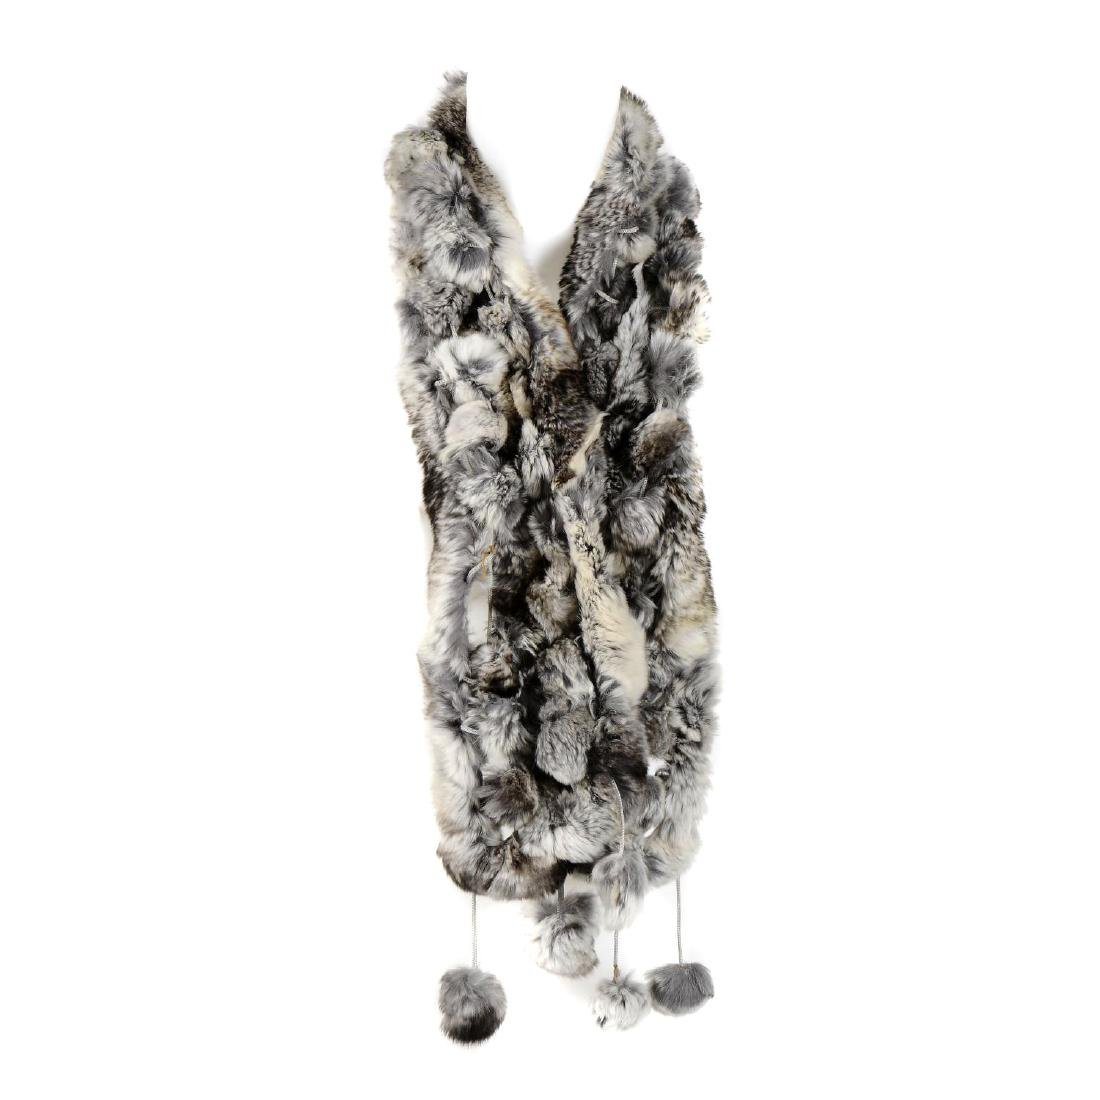 Six coney fur scarves. To include five pom-pom style